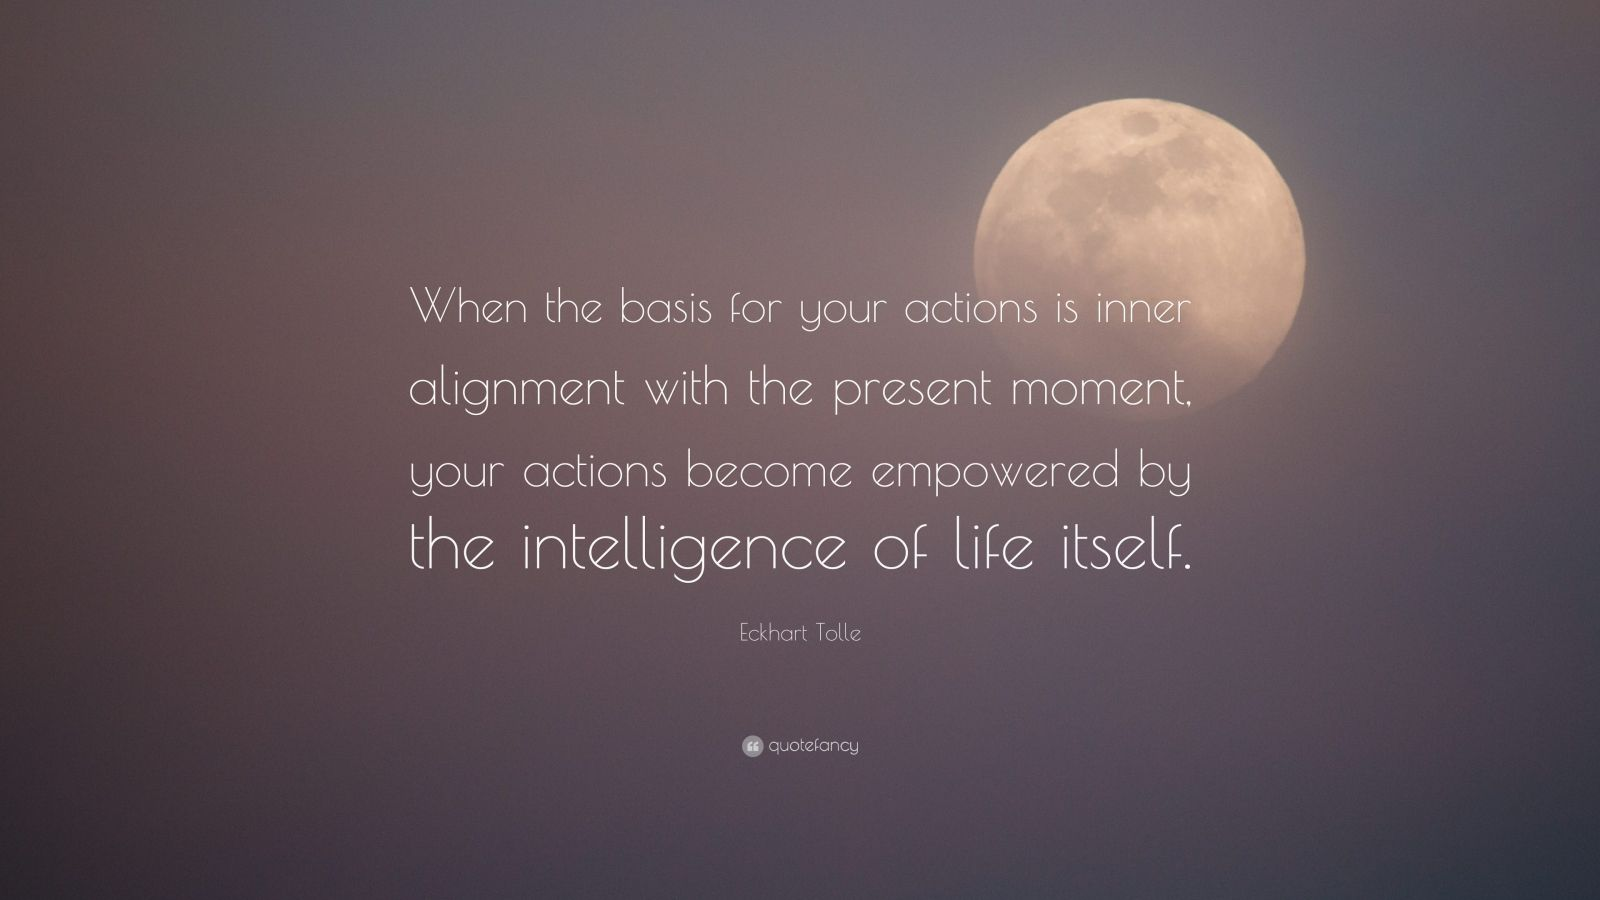 """Eckhart Tolle Quote: """"When the basis for your actions is inner alignment with the present moment, your actions become empowered by the intelligence of life itself."""""""